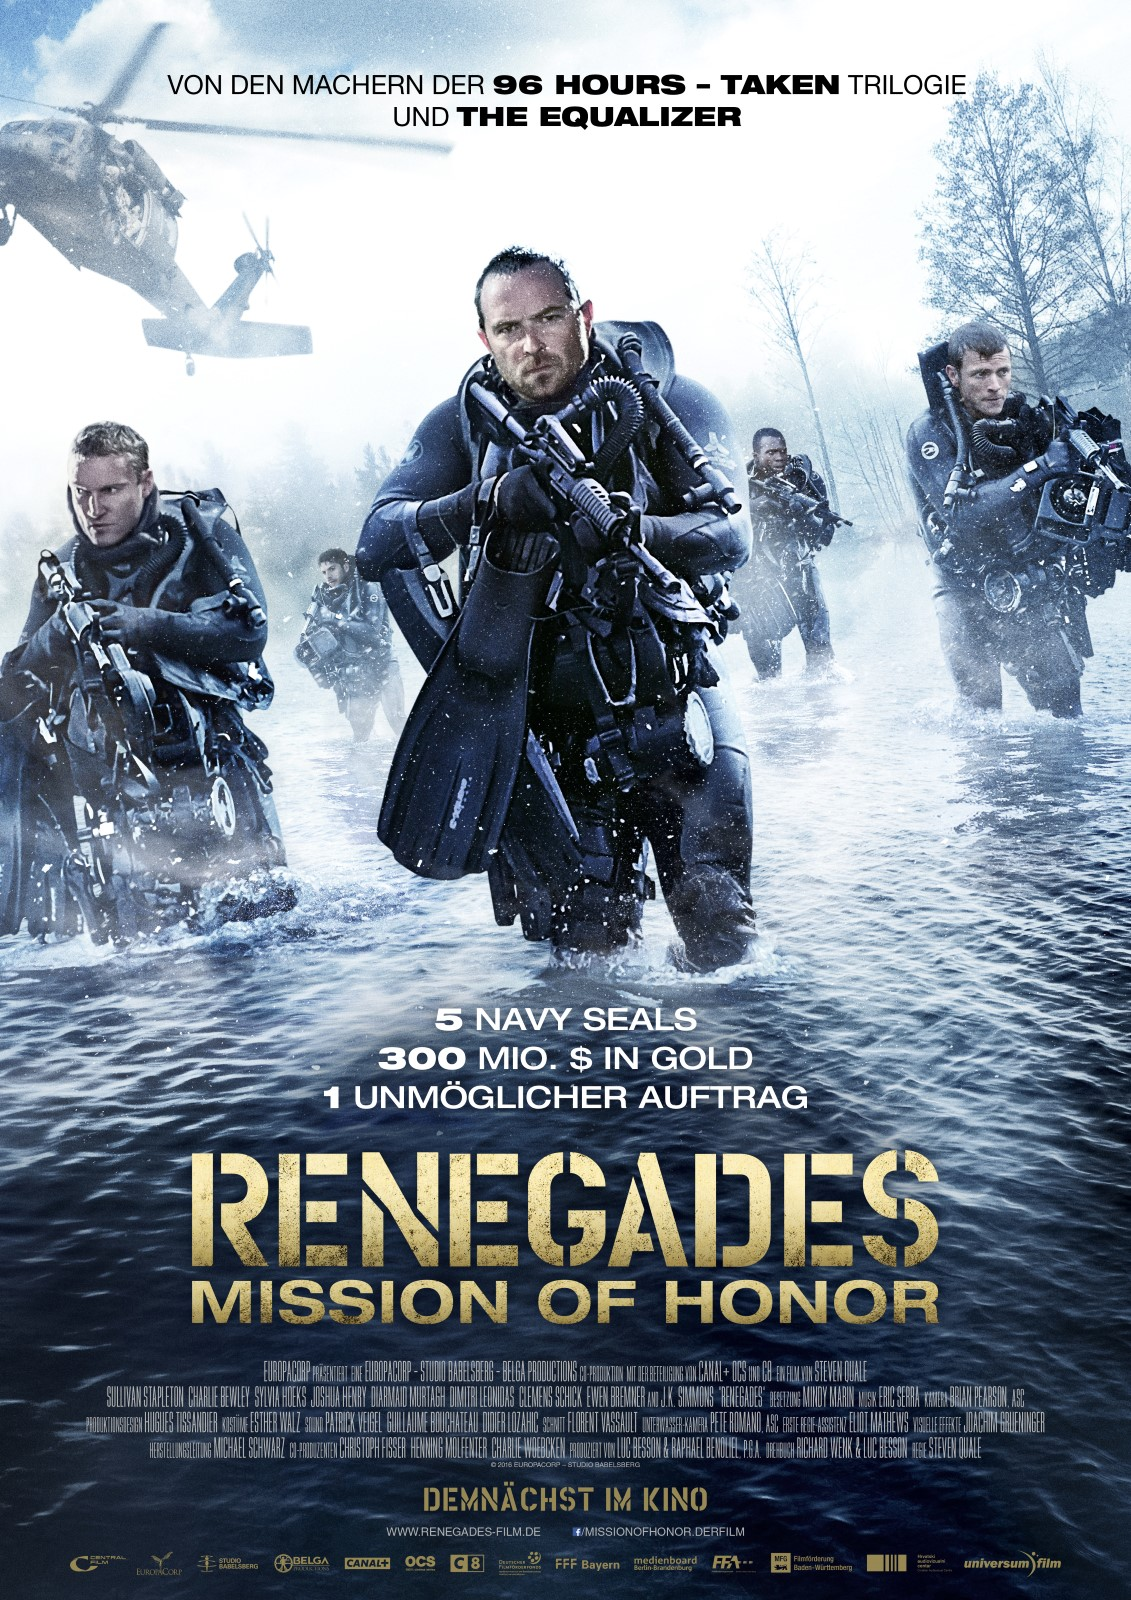 Renegades Mission Of Honor Trailer